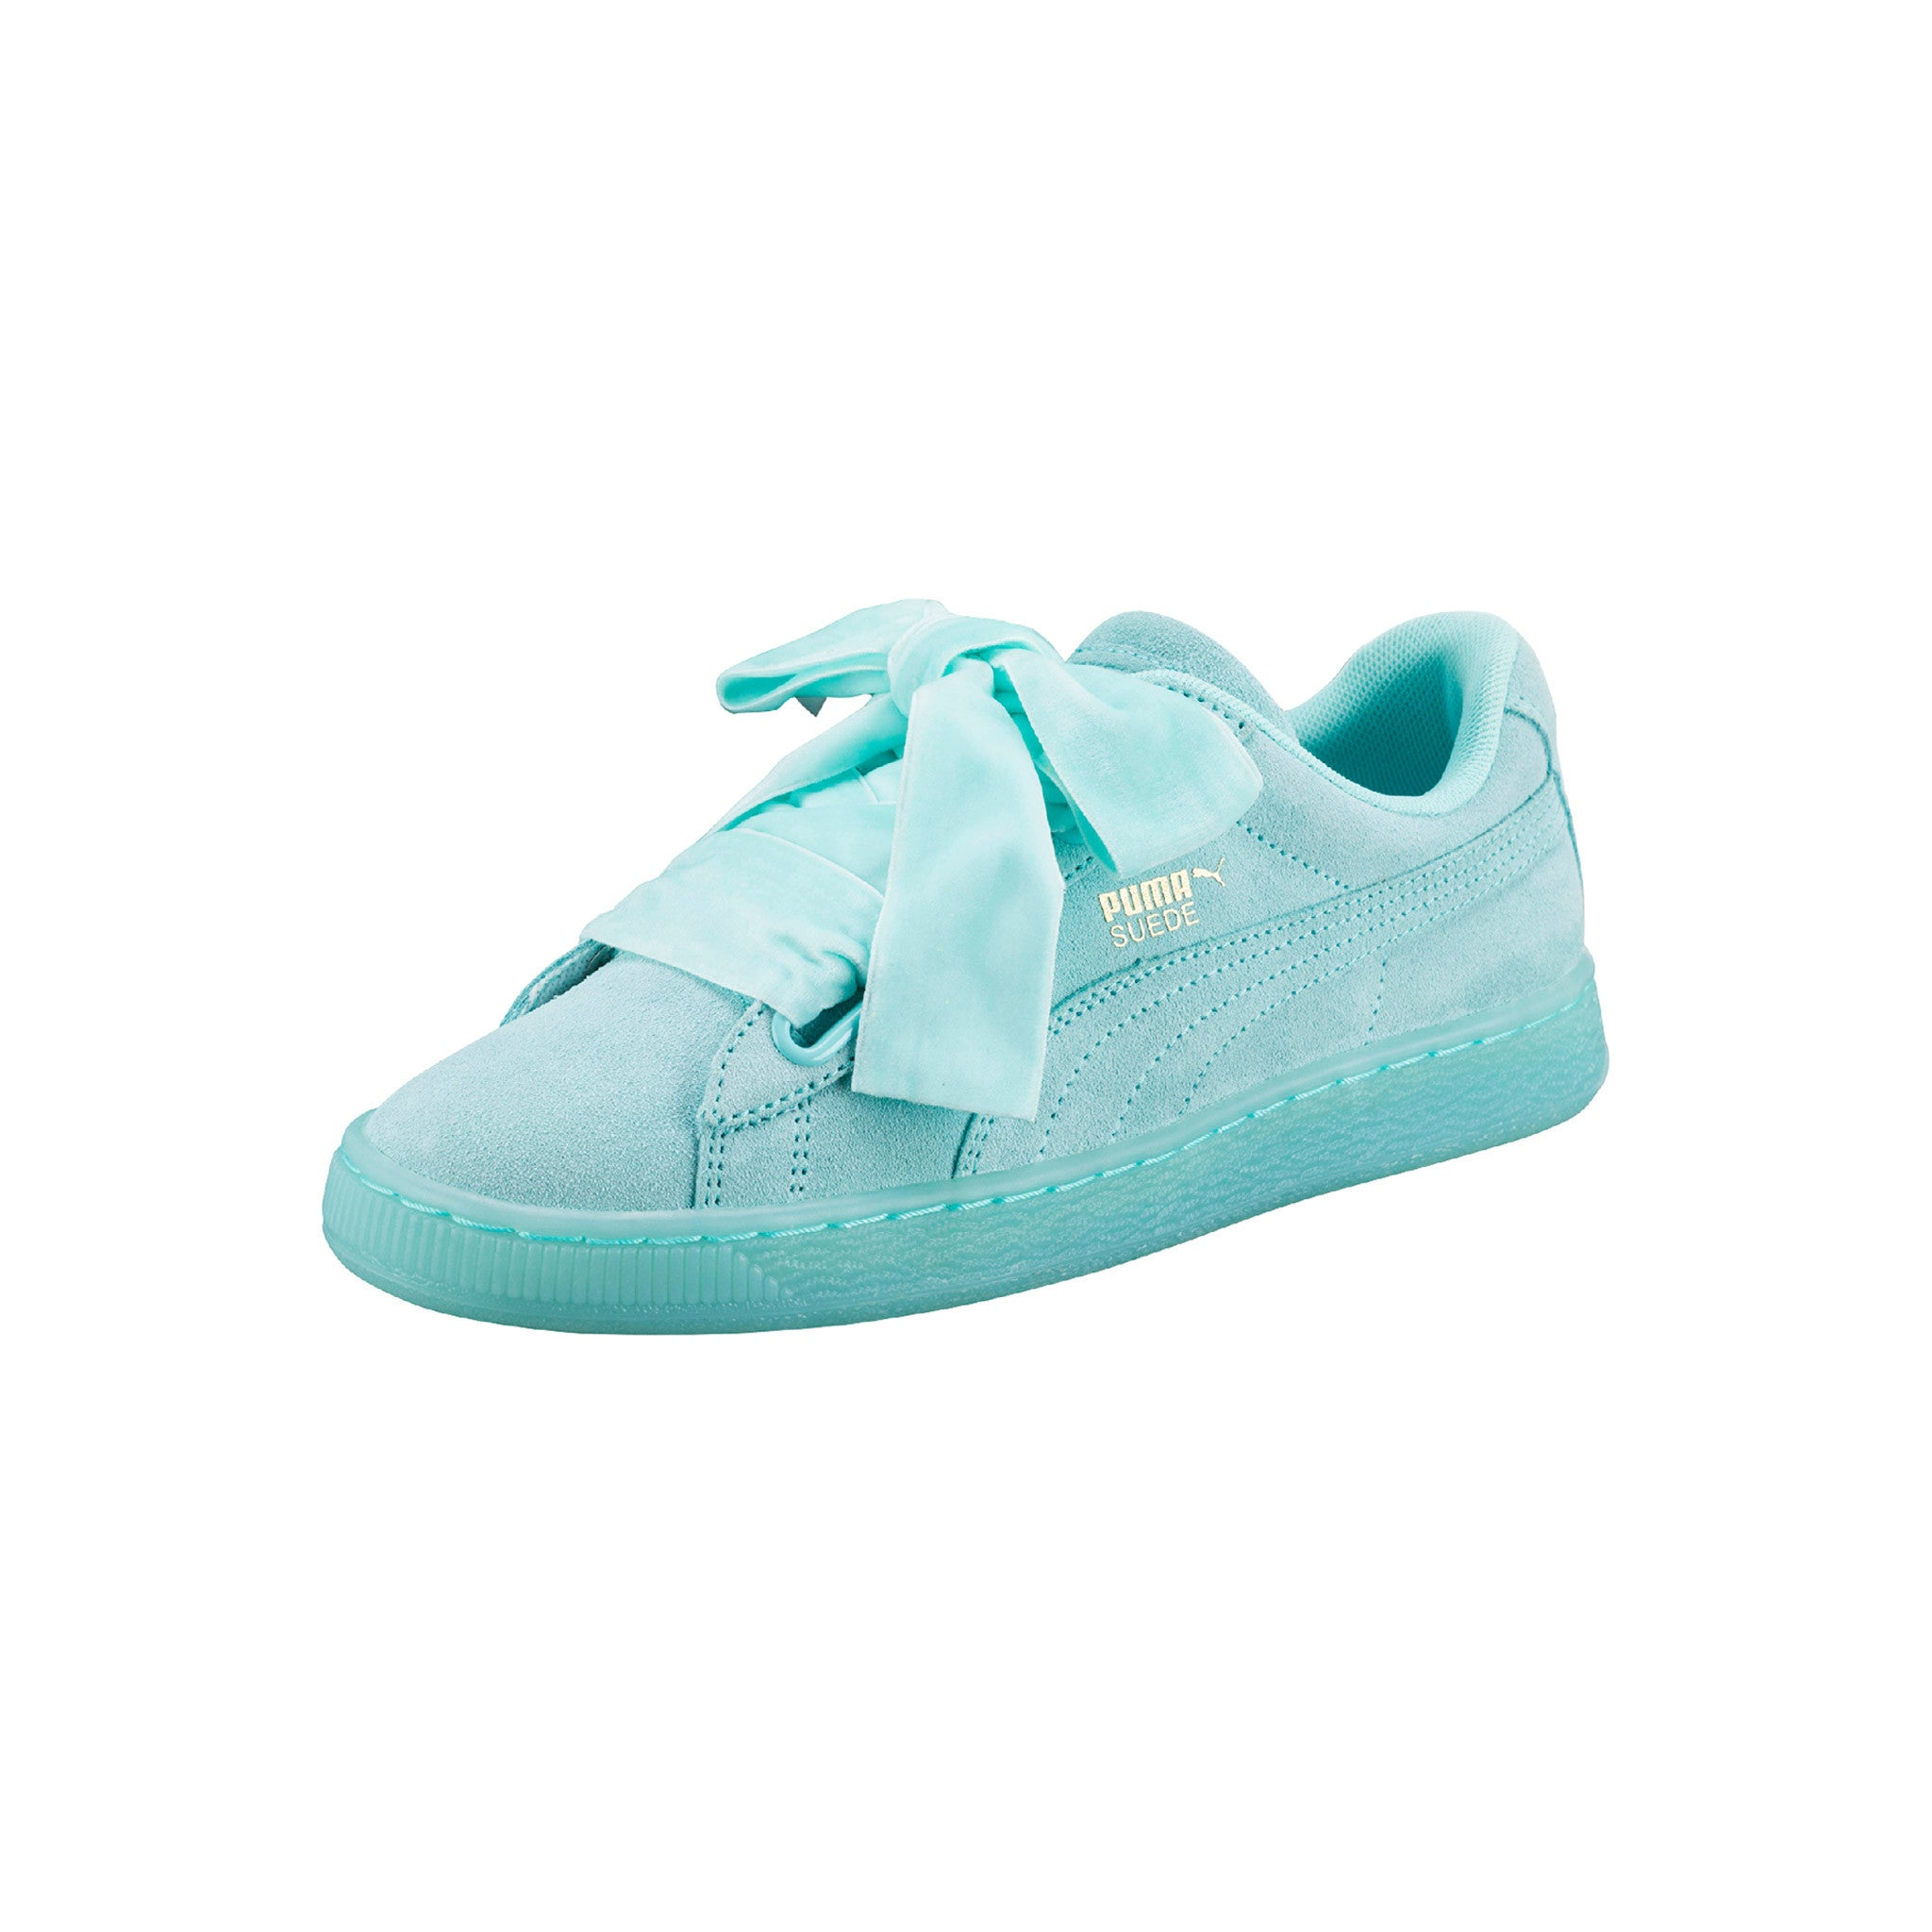 Suede Heart Reset Aruba Puma Sneakers Blue Angled View